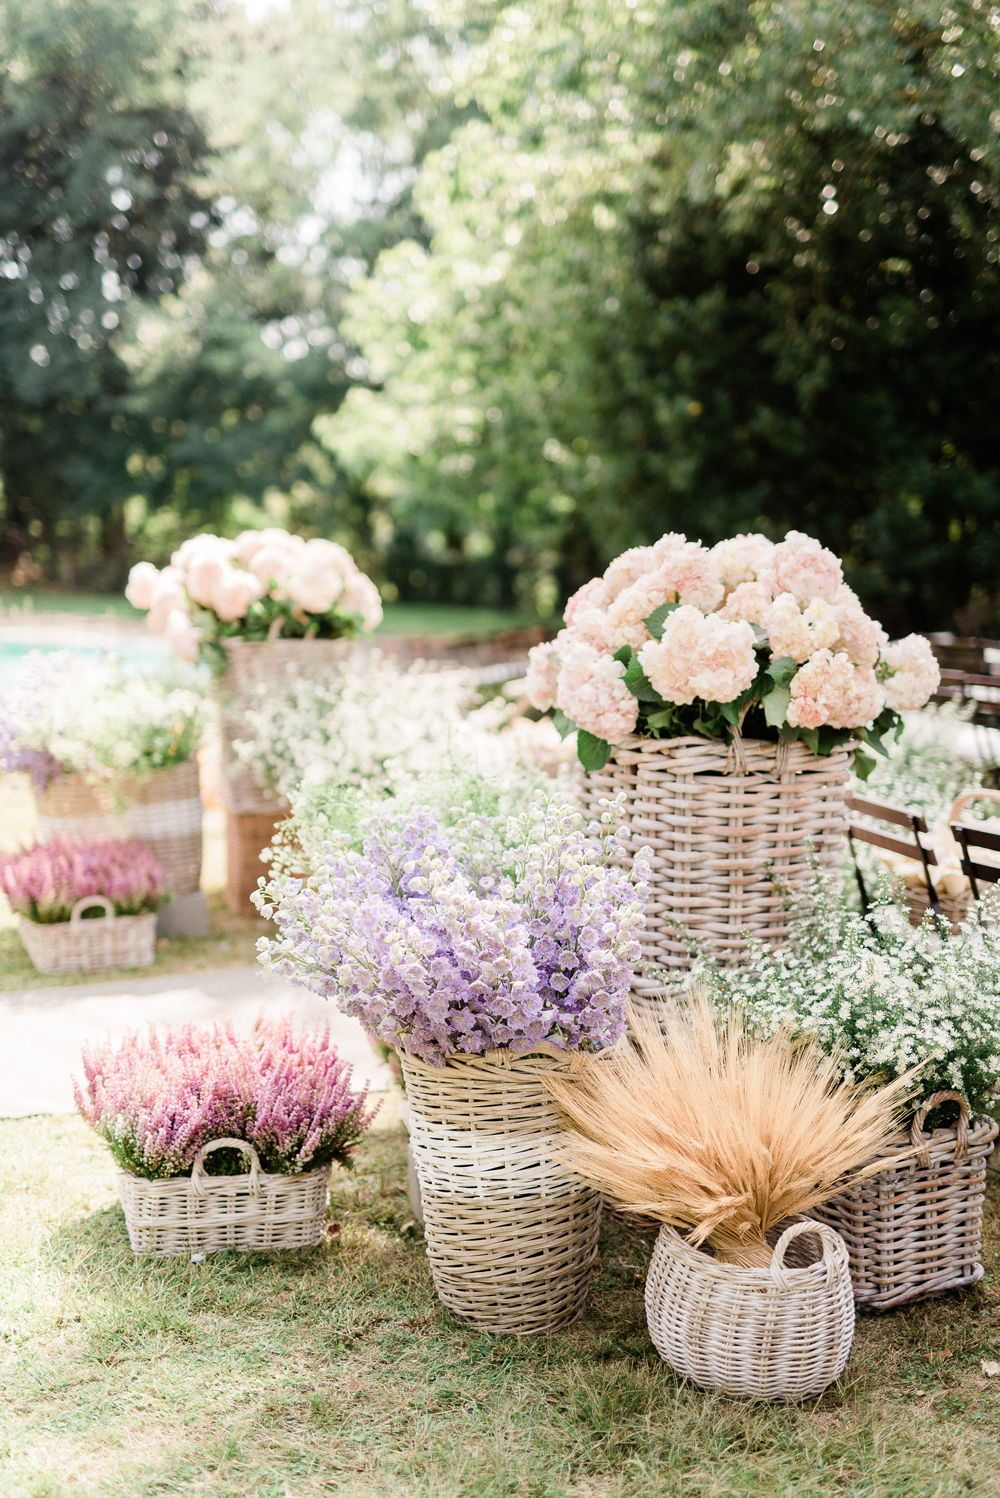 If you're dreaming of a magical garden spring wedding, filled with pastel and bright flowers, with a whimsical feel - these 29 ideas from Martha Stewart Wedding to create the most magical and romantic secret garden party are just for you! With pinks, reds, yellows, whites, greens and more - you can make your big day stunning! #GardenParty #Wedding #Ideas #Inspiration #Weddings #Flowers #Floral #MarthaStewart | Martha Stewart Weddings - 29 Ways to Turn Your Wedding Into a Secret Garden